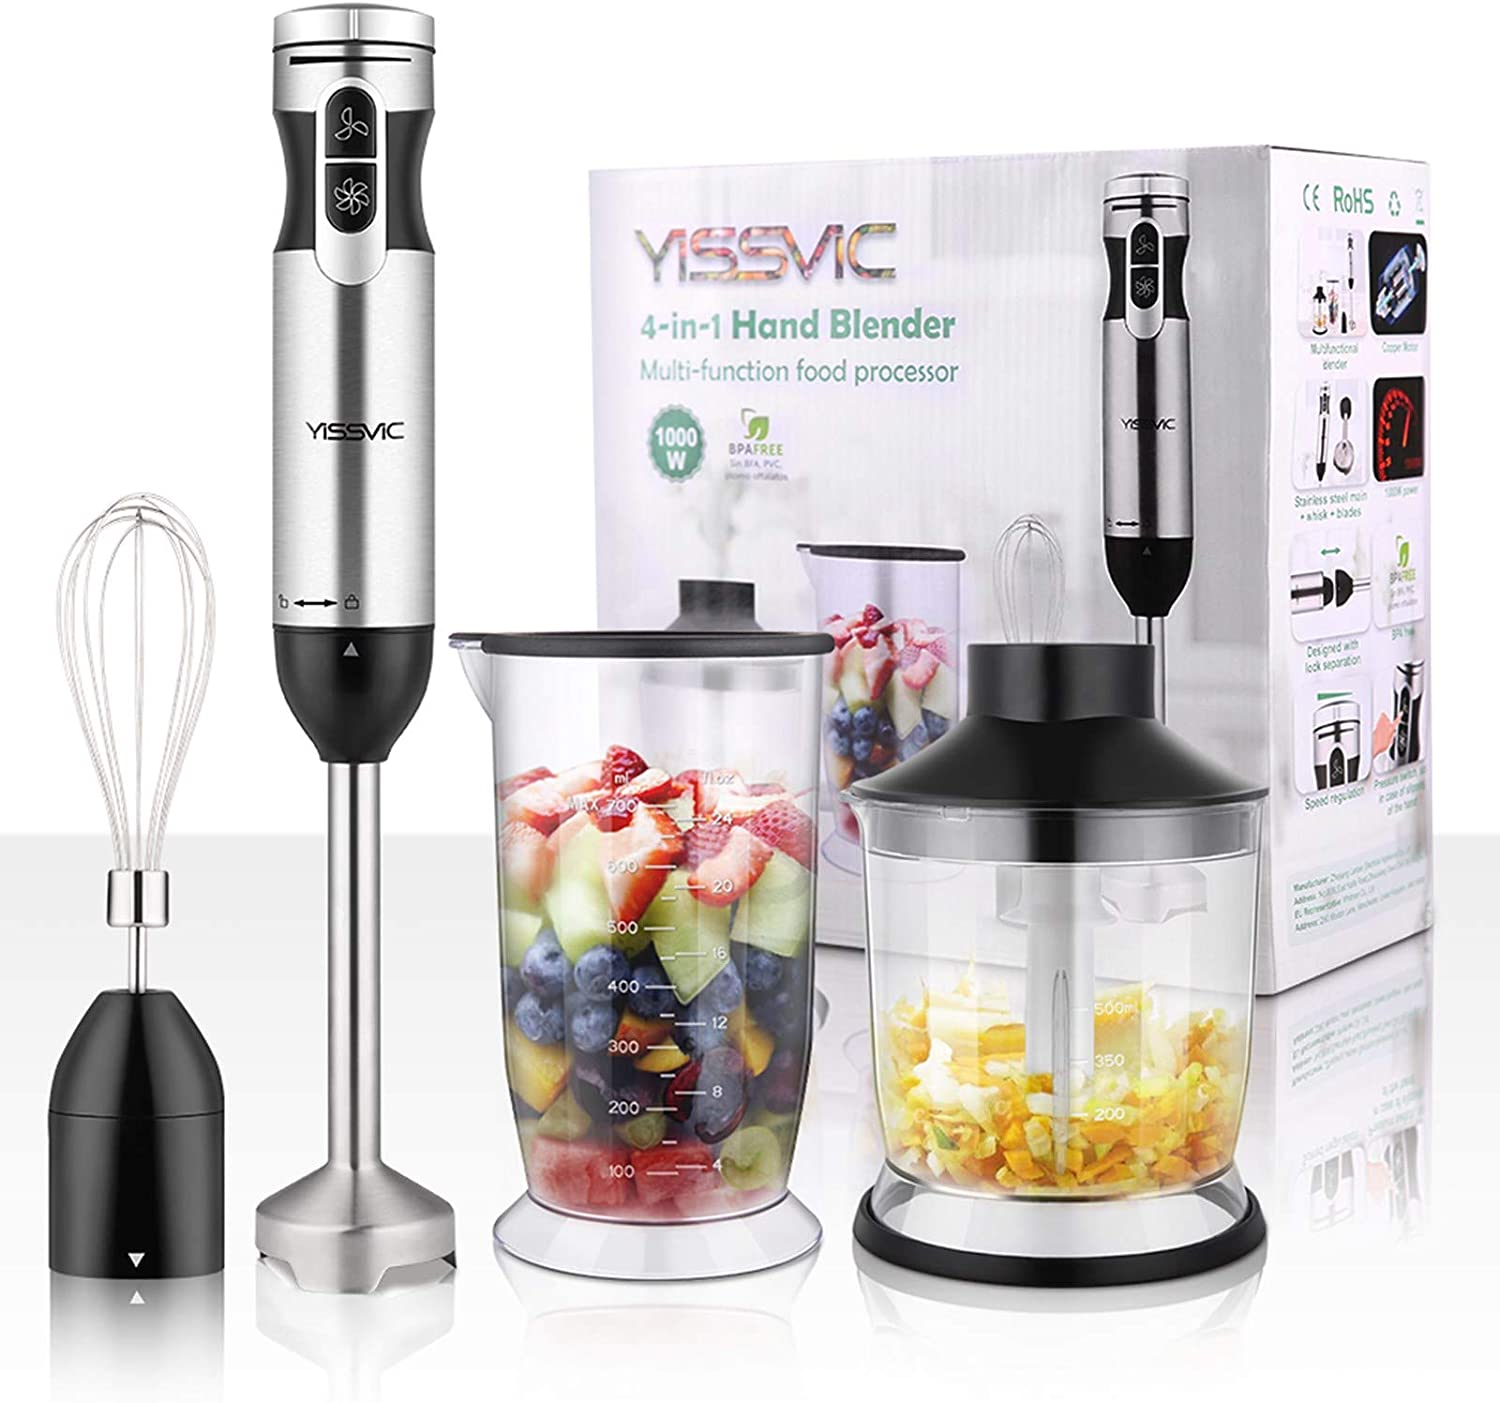 YISSVIC Hand Blender 1000W 700ml Immersion Blender 9 Speed Control, 4 In 1 Powerful Stick Blender, Chopper, Whisk, 500ml Food Grinder for Sauces Smoothie Puree Infant Food